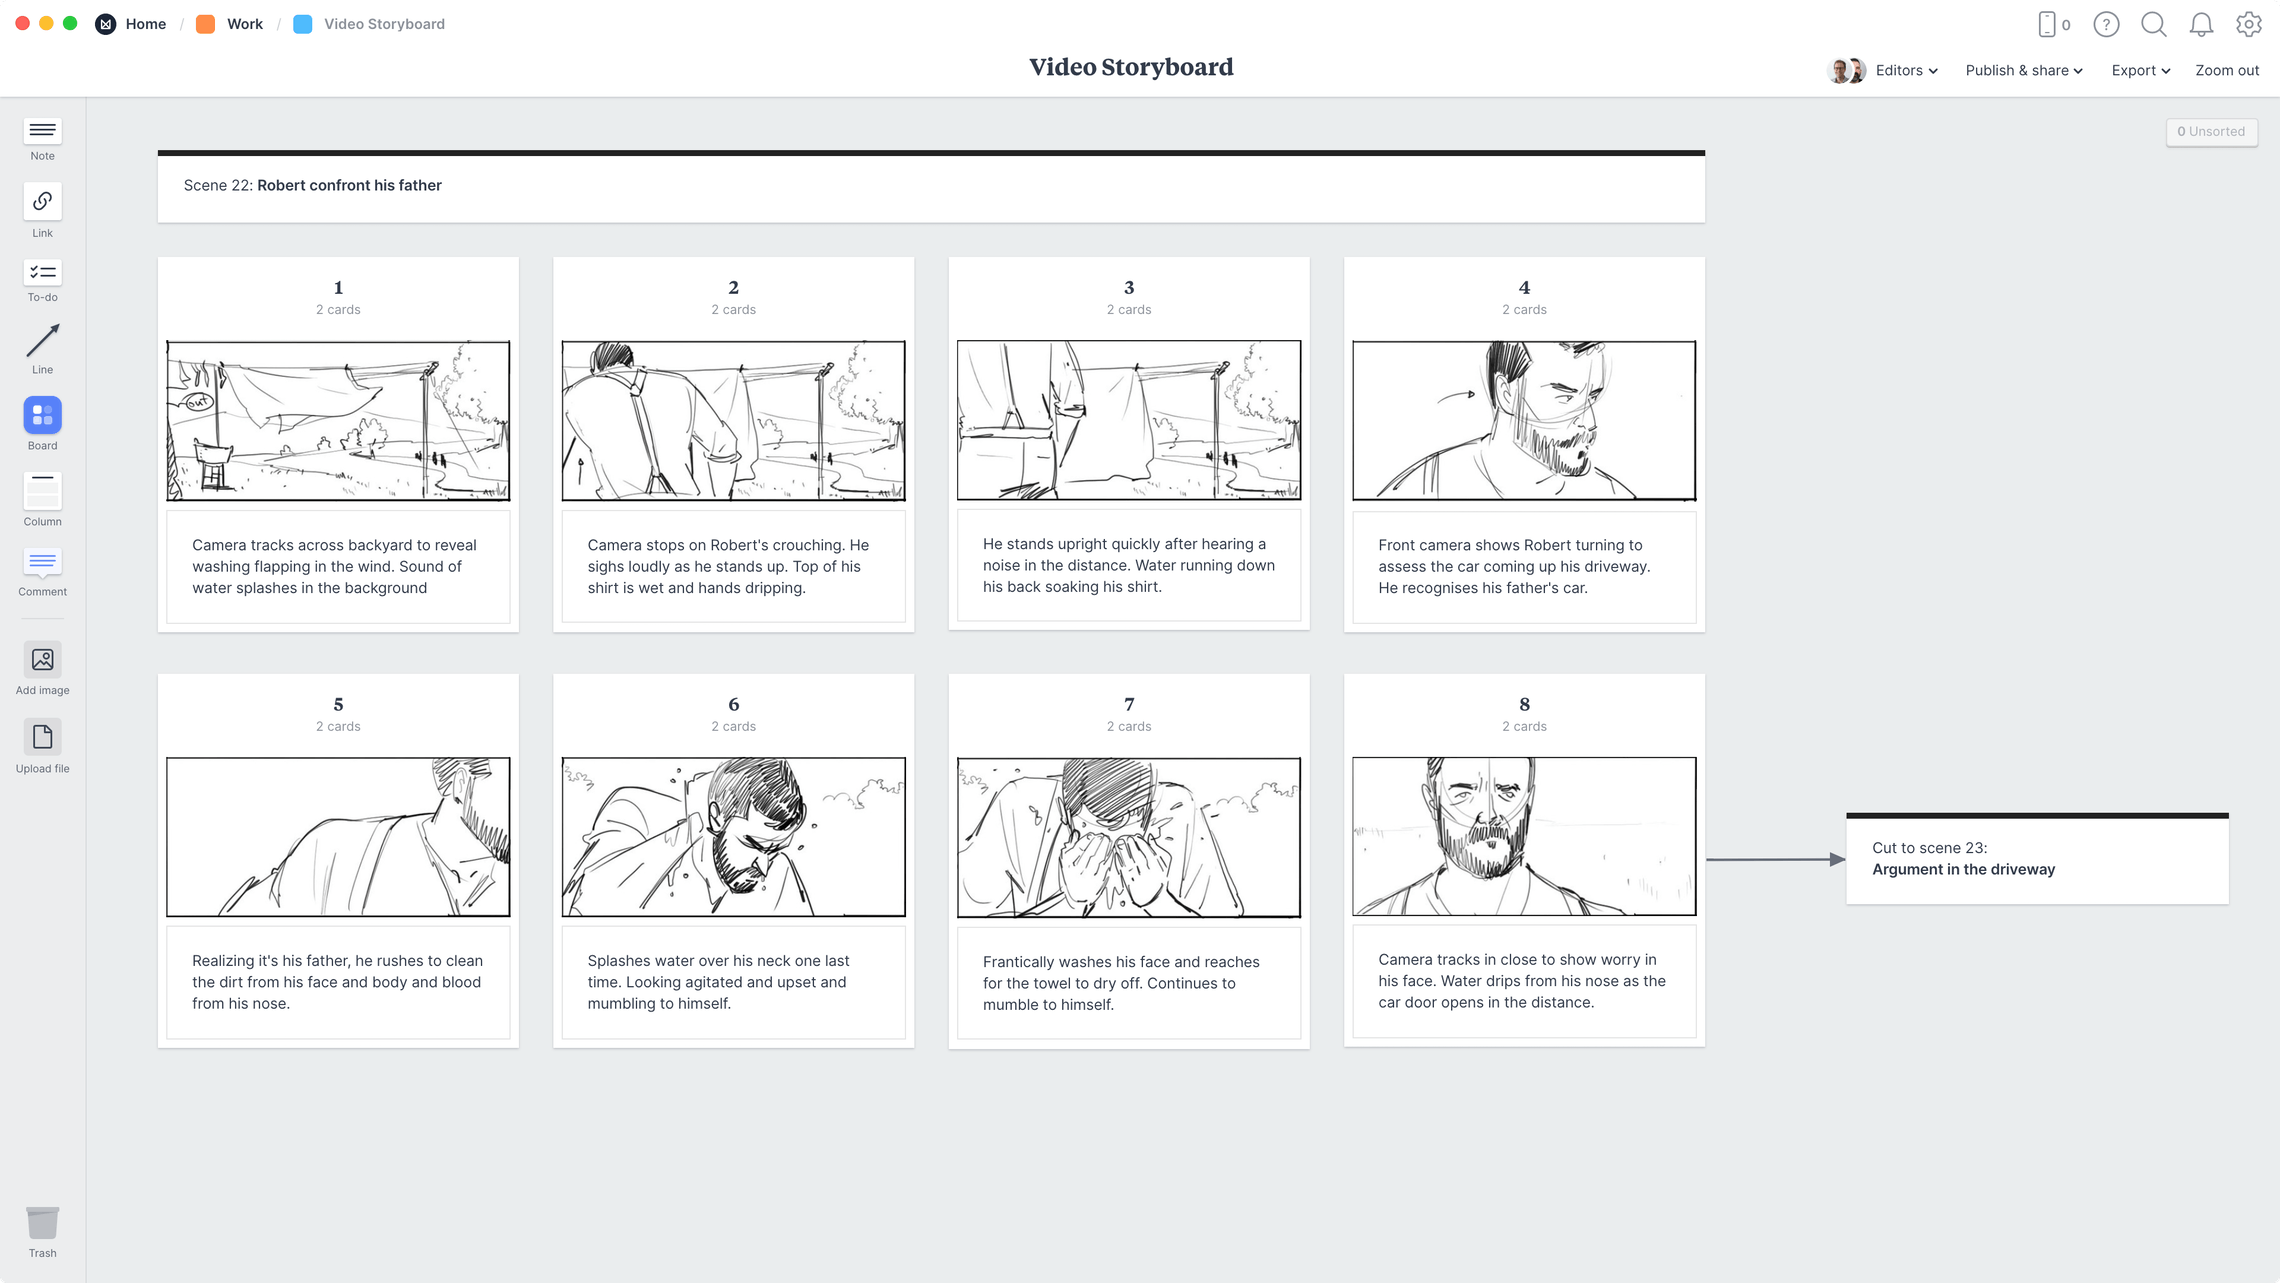 Video Storyboard Template, within the Milanote app